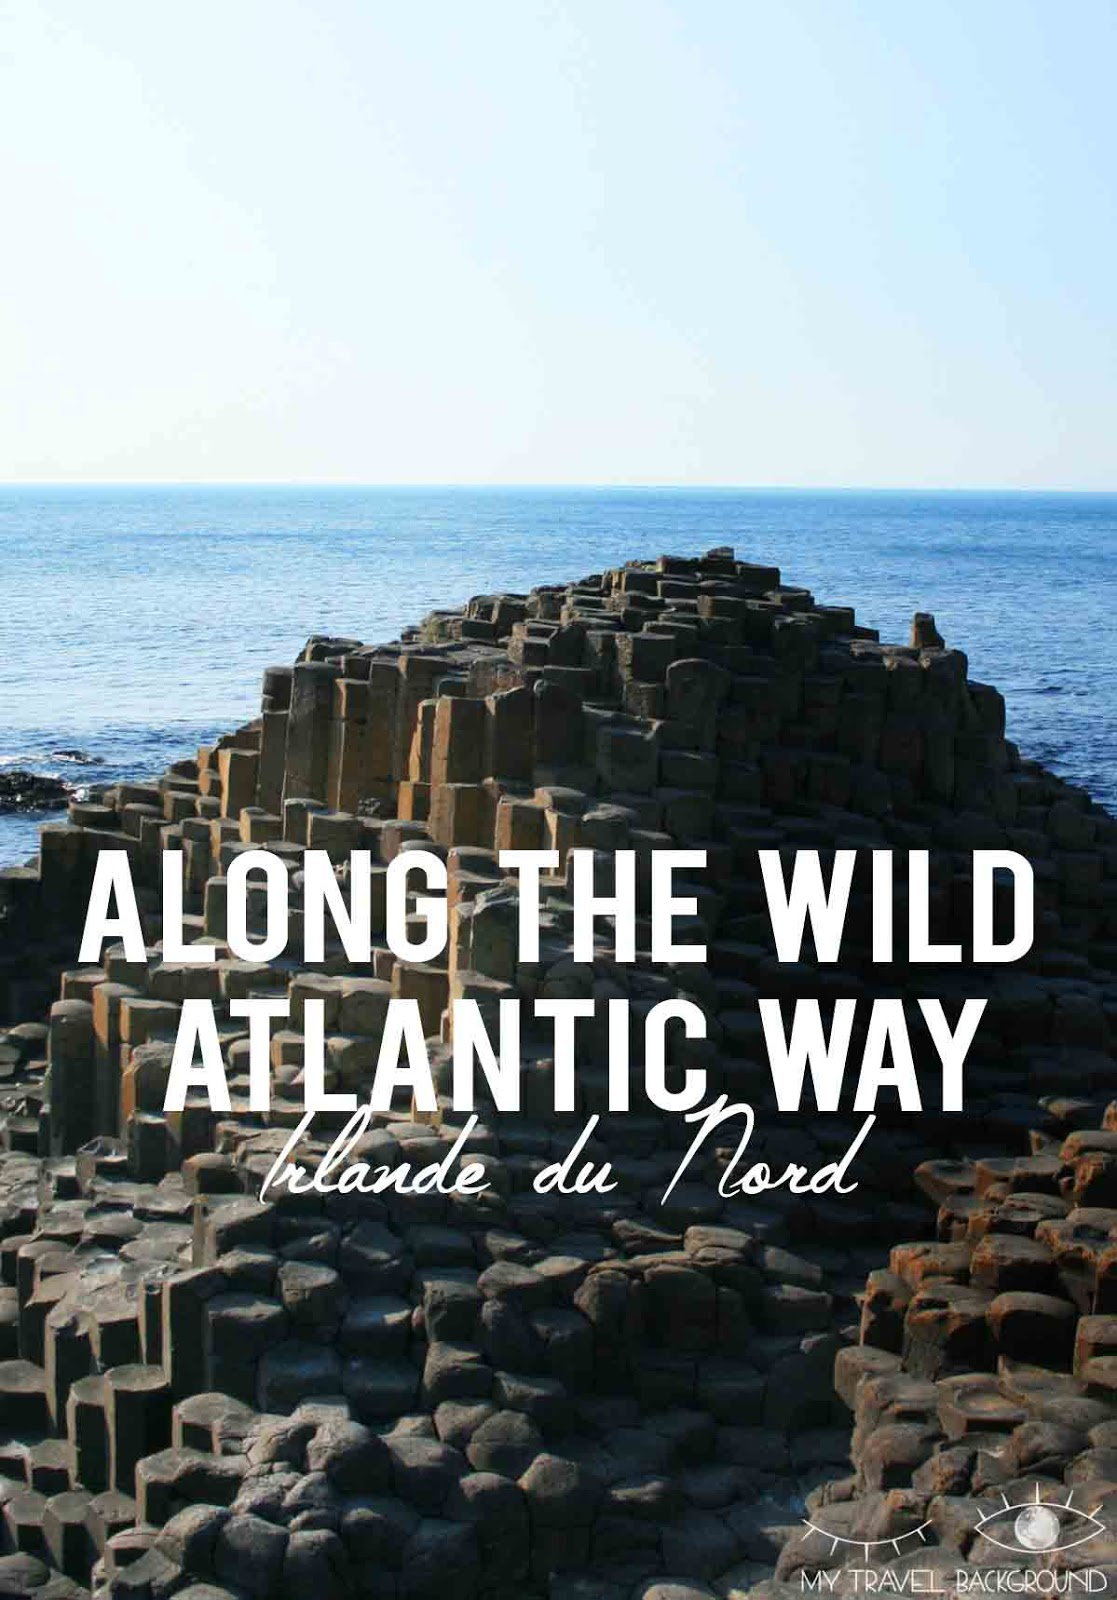 My Travel Background : Along the wild atlantic Way, Irlande du Nord - A la découverte des (London)Derry, le Dunluce Castle, la chaussée des géants...